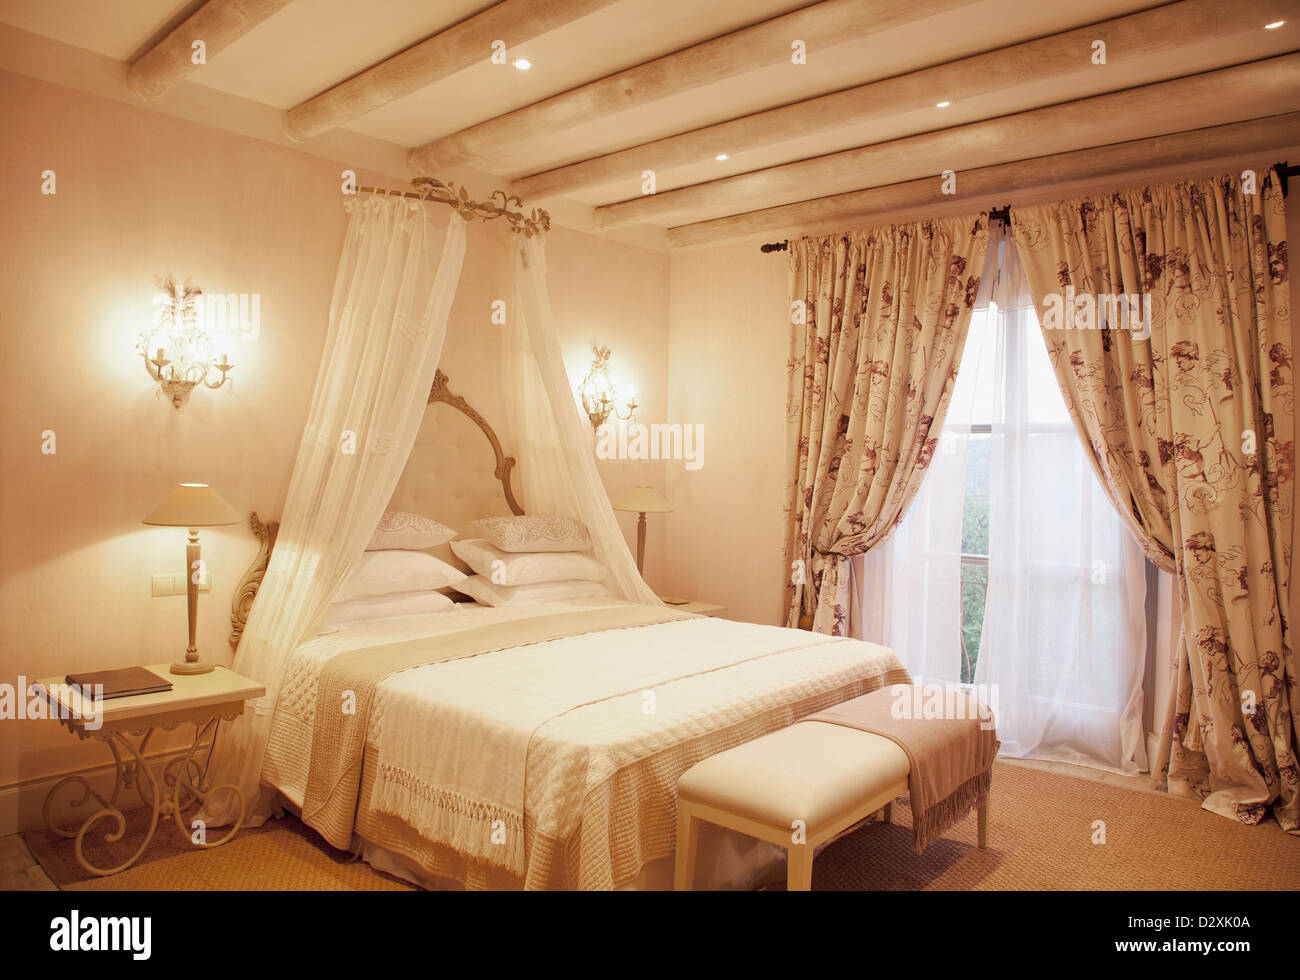 Sconces and canopy above bed in luxury bedroom & Sconces and canopy above bed in luxury bedroom Stock Photo: 53446074 ...